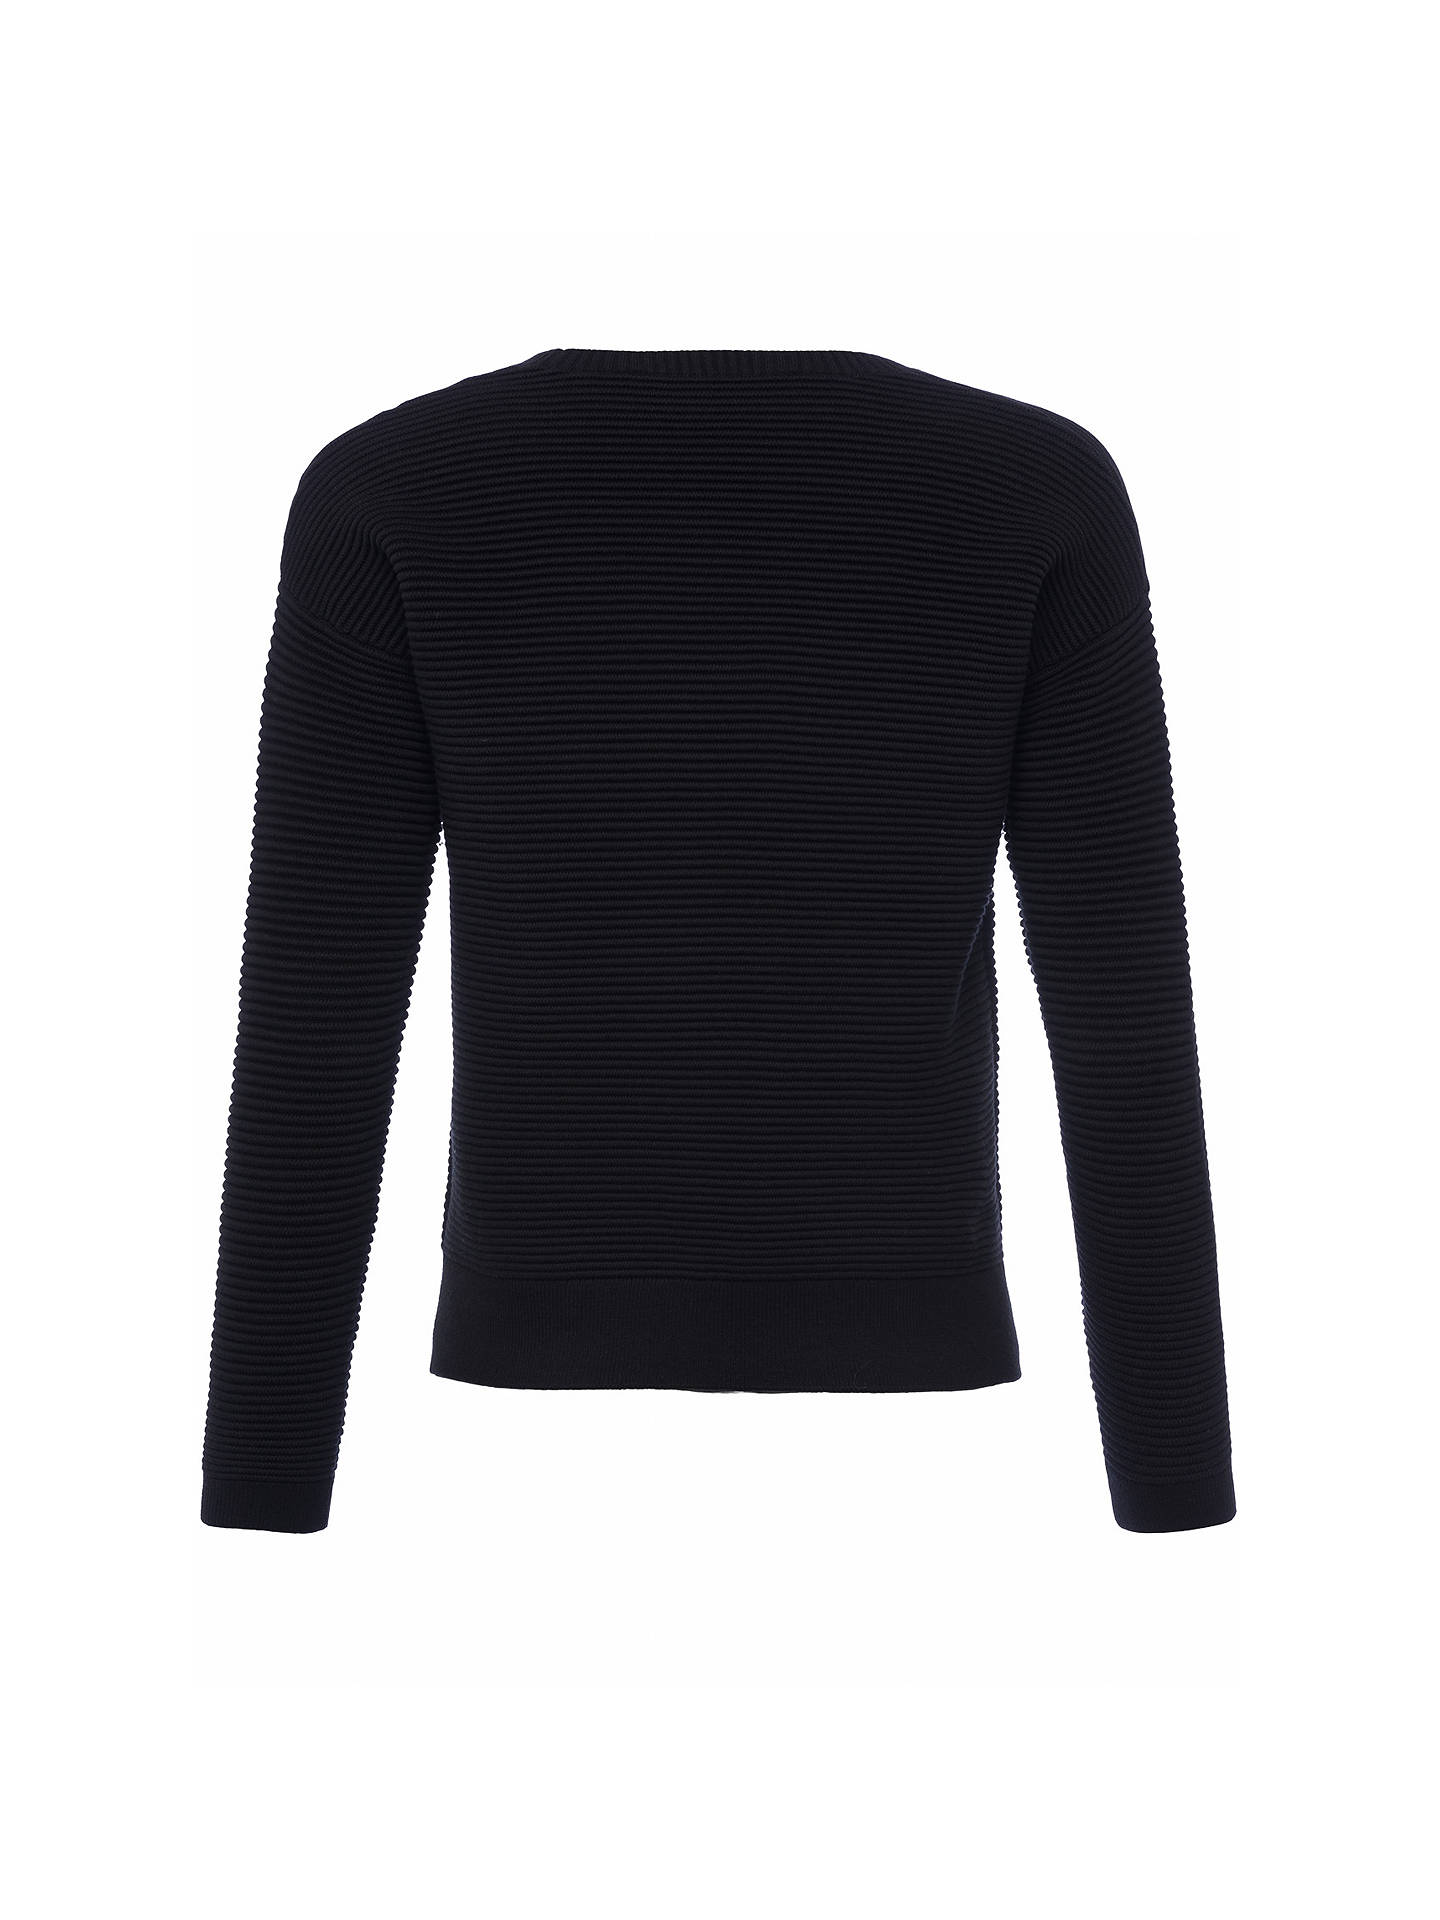 BuyFrench Connection Sunday Mozart Scoop Neck Jumper, Black, XS Online at johnlewis.com